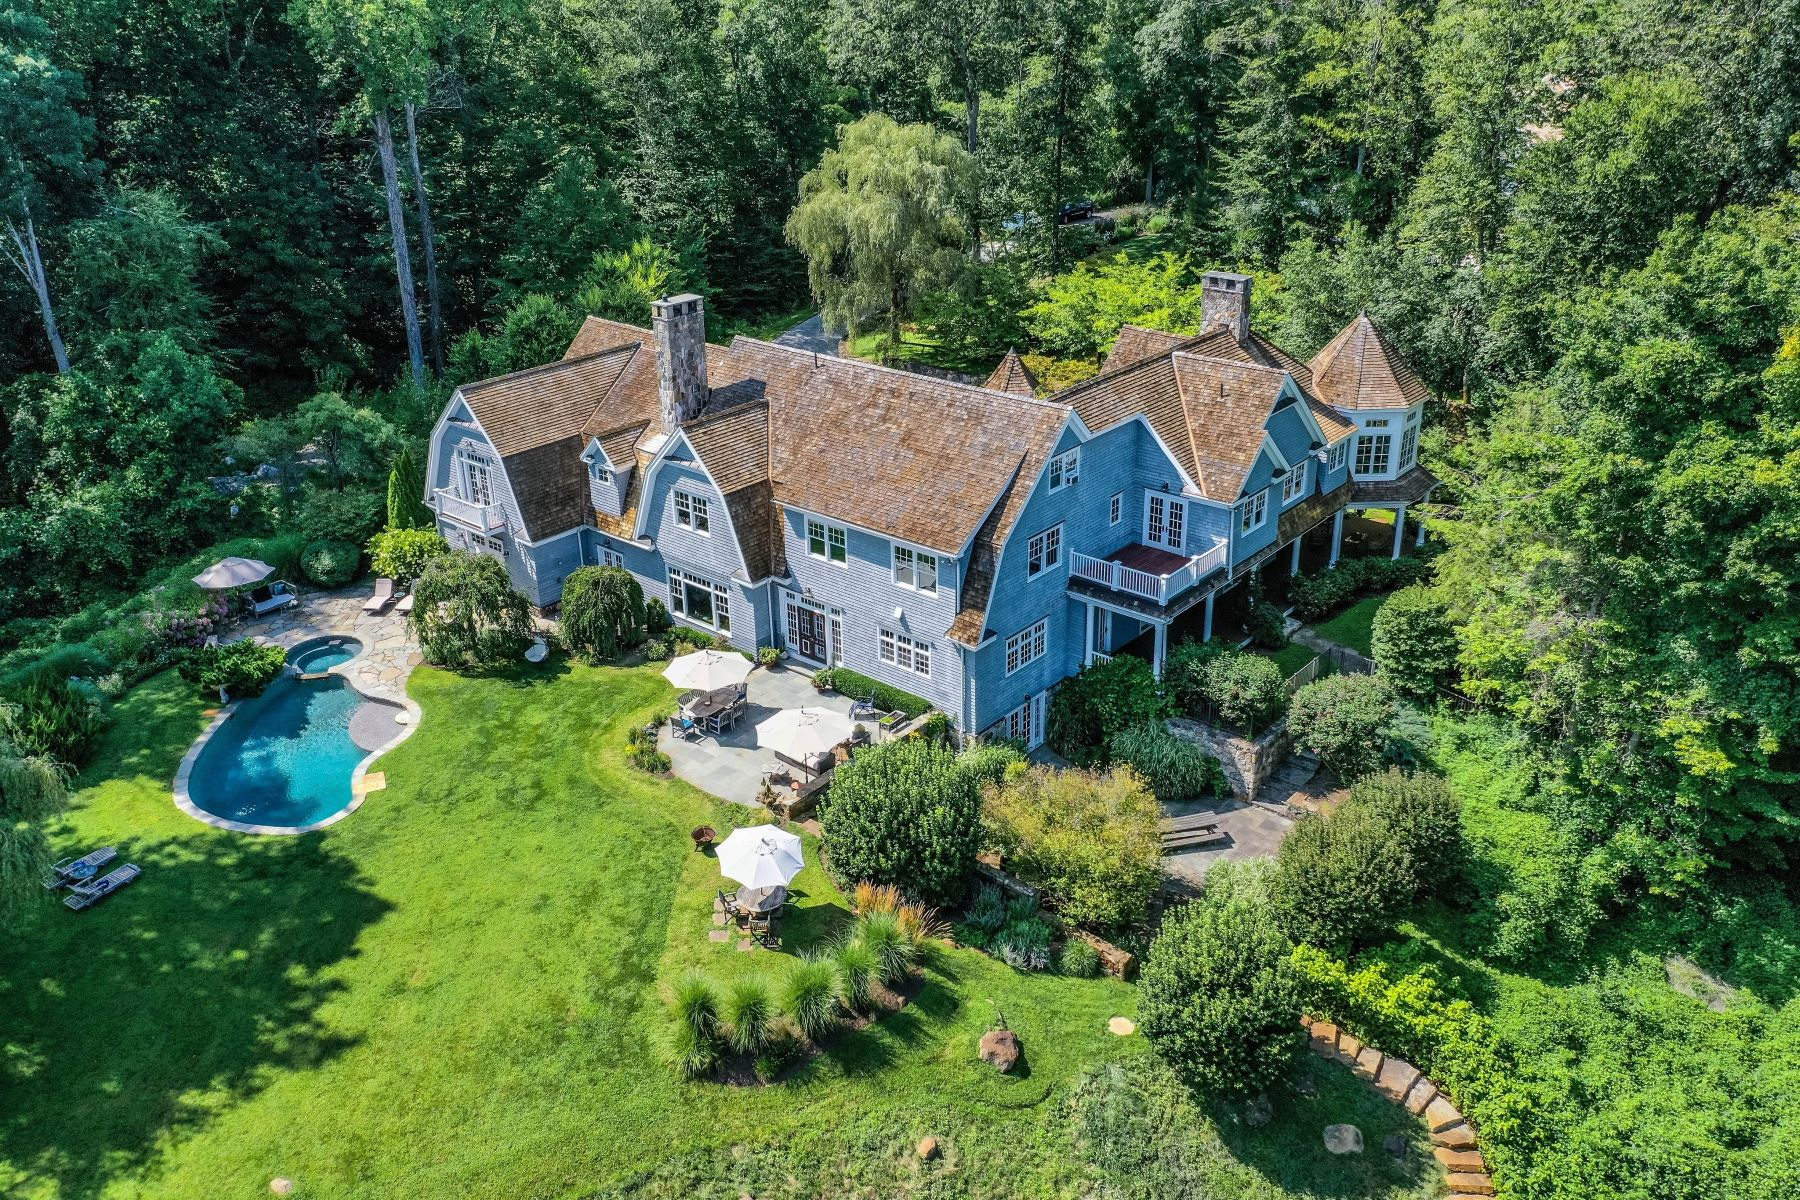 Single Family Homes for Sale at Enchanting Retreat with Magnificent Views 36 Michaels Way, Weston, Connecticut 06883 United States